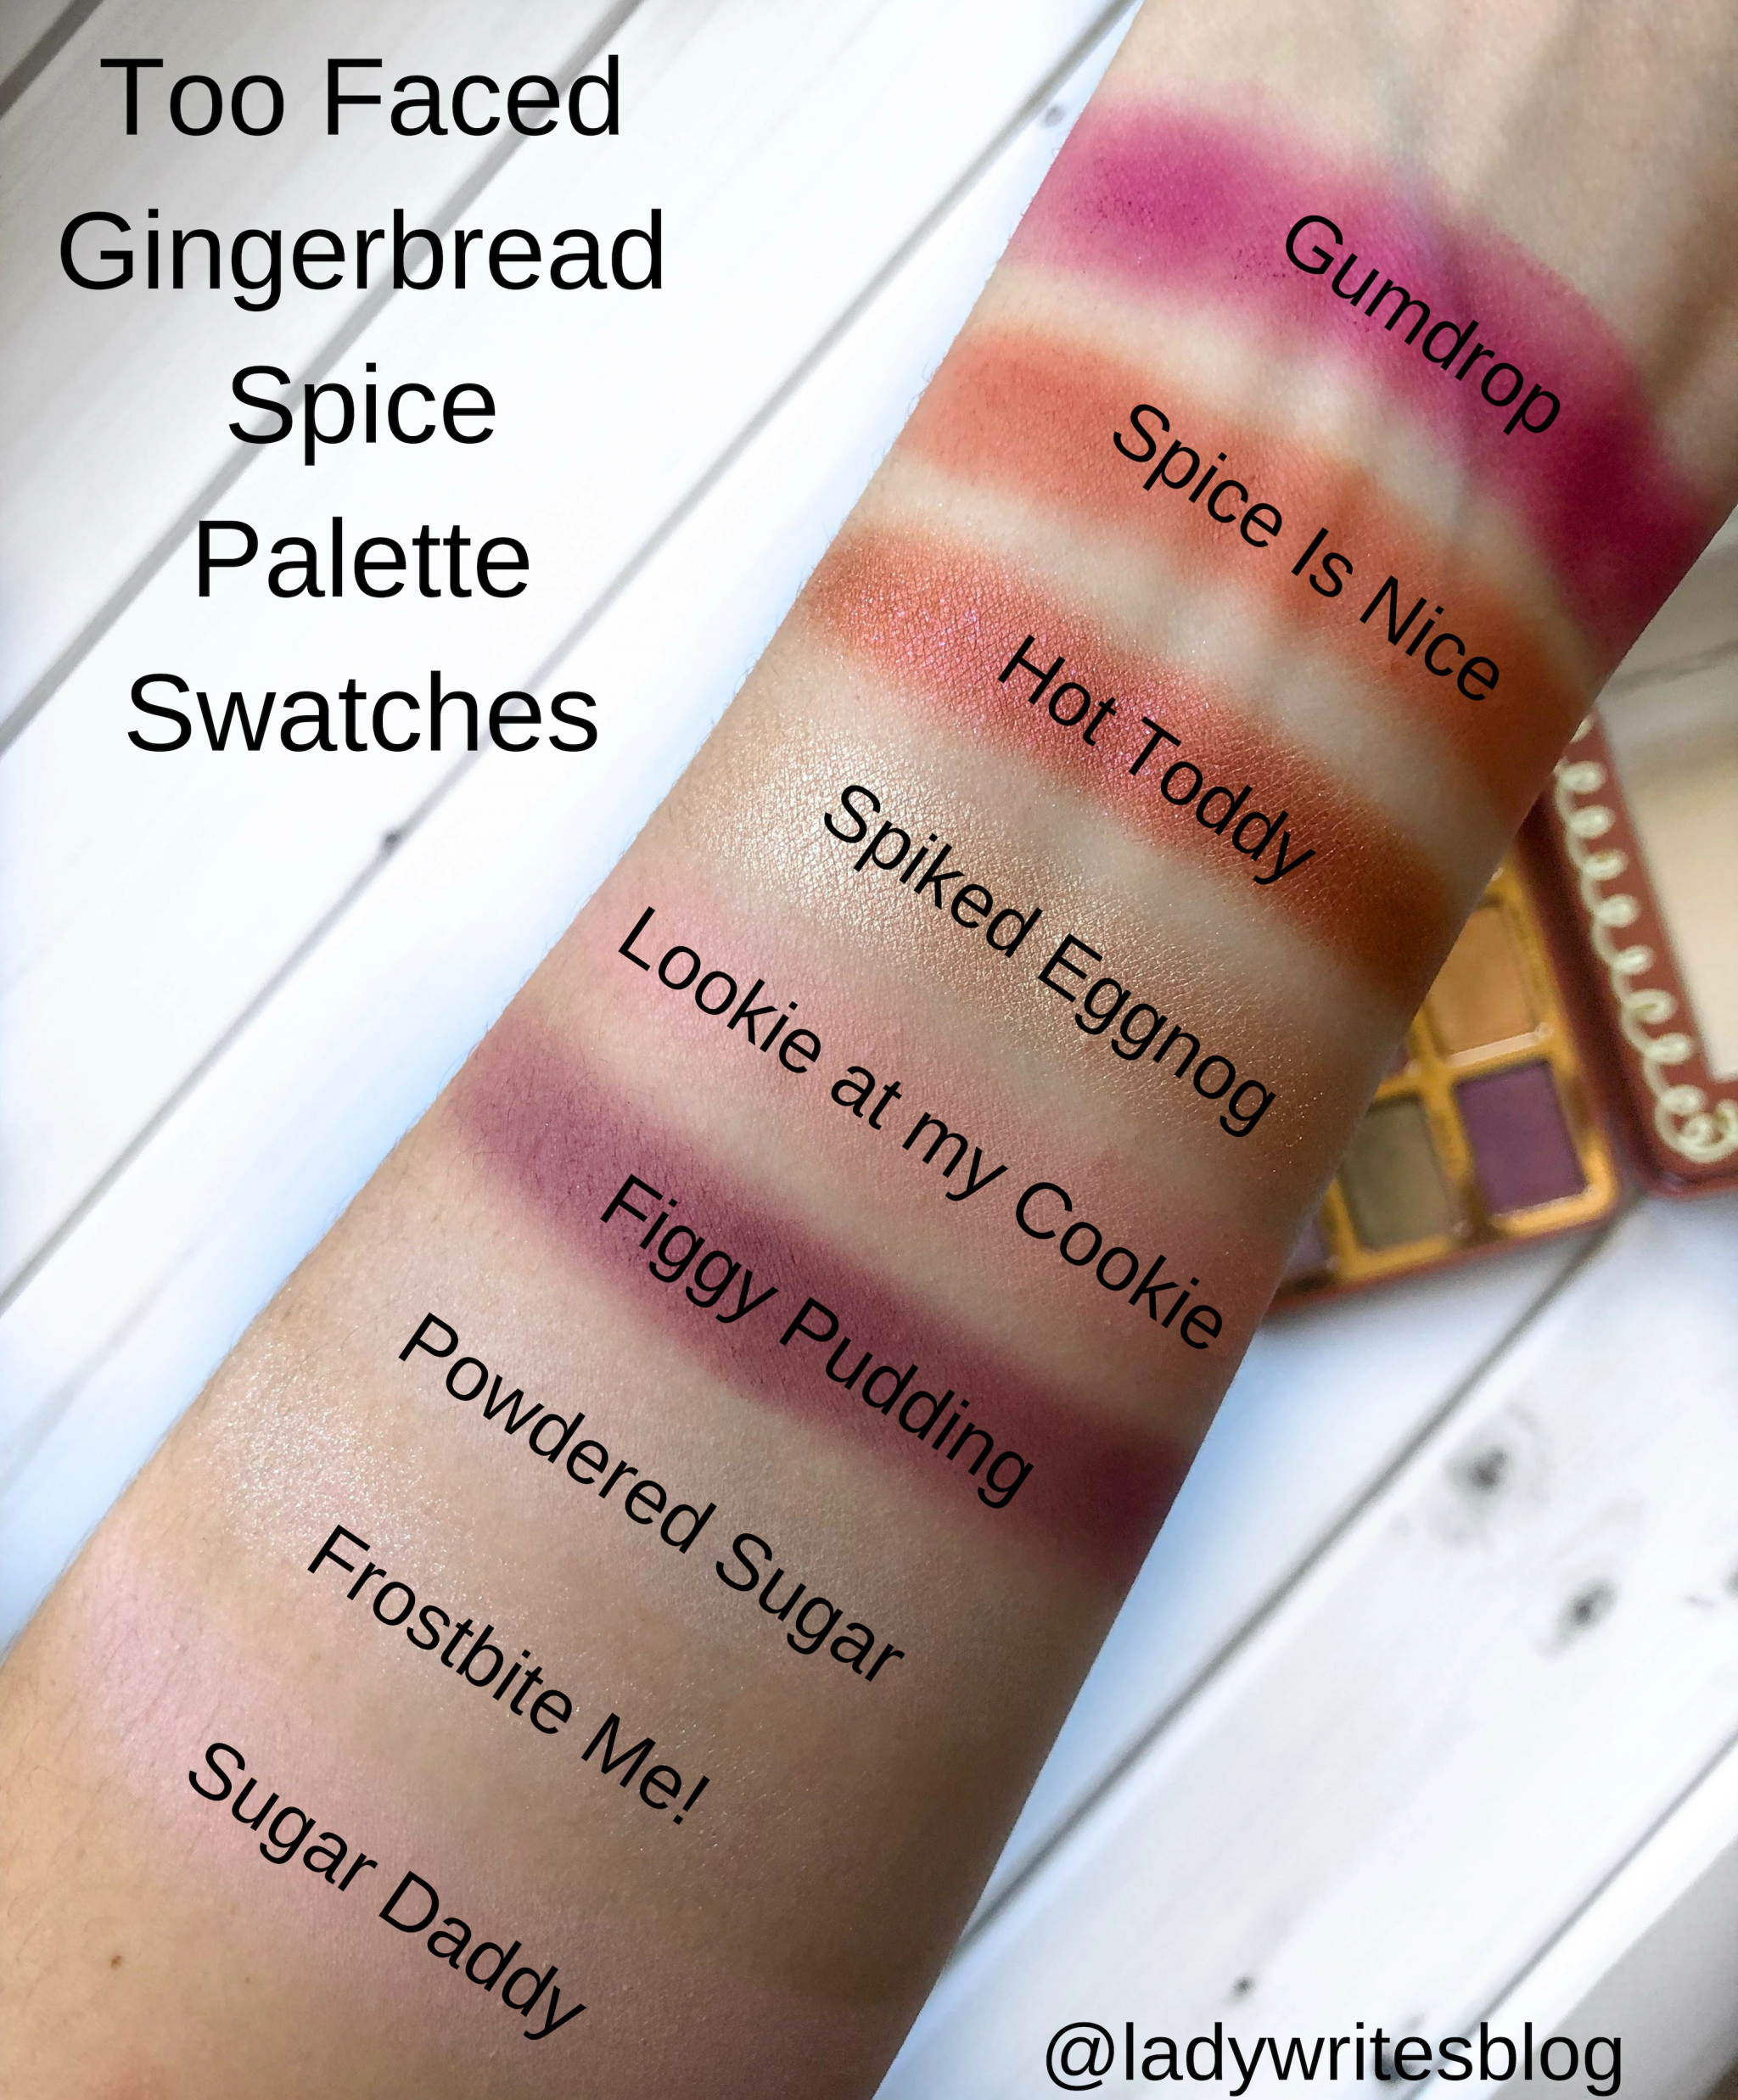 Too Faced Gingerbread Spice Palette Swatches